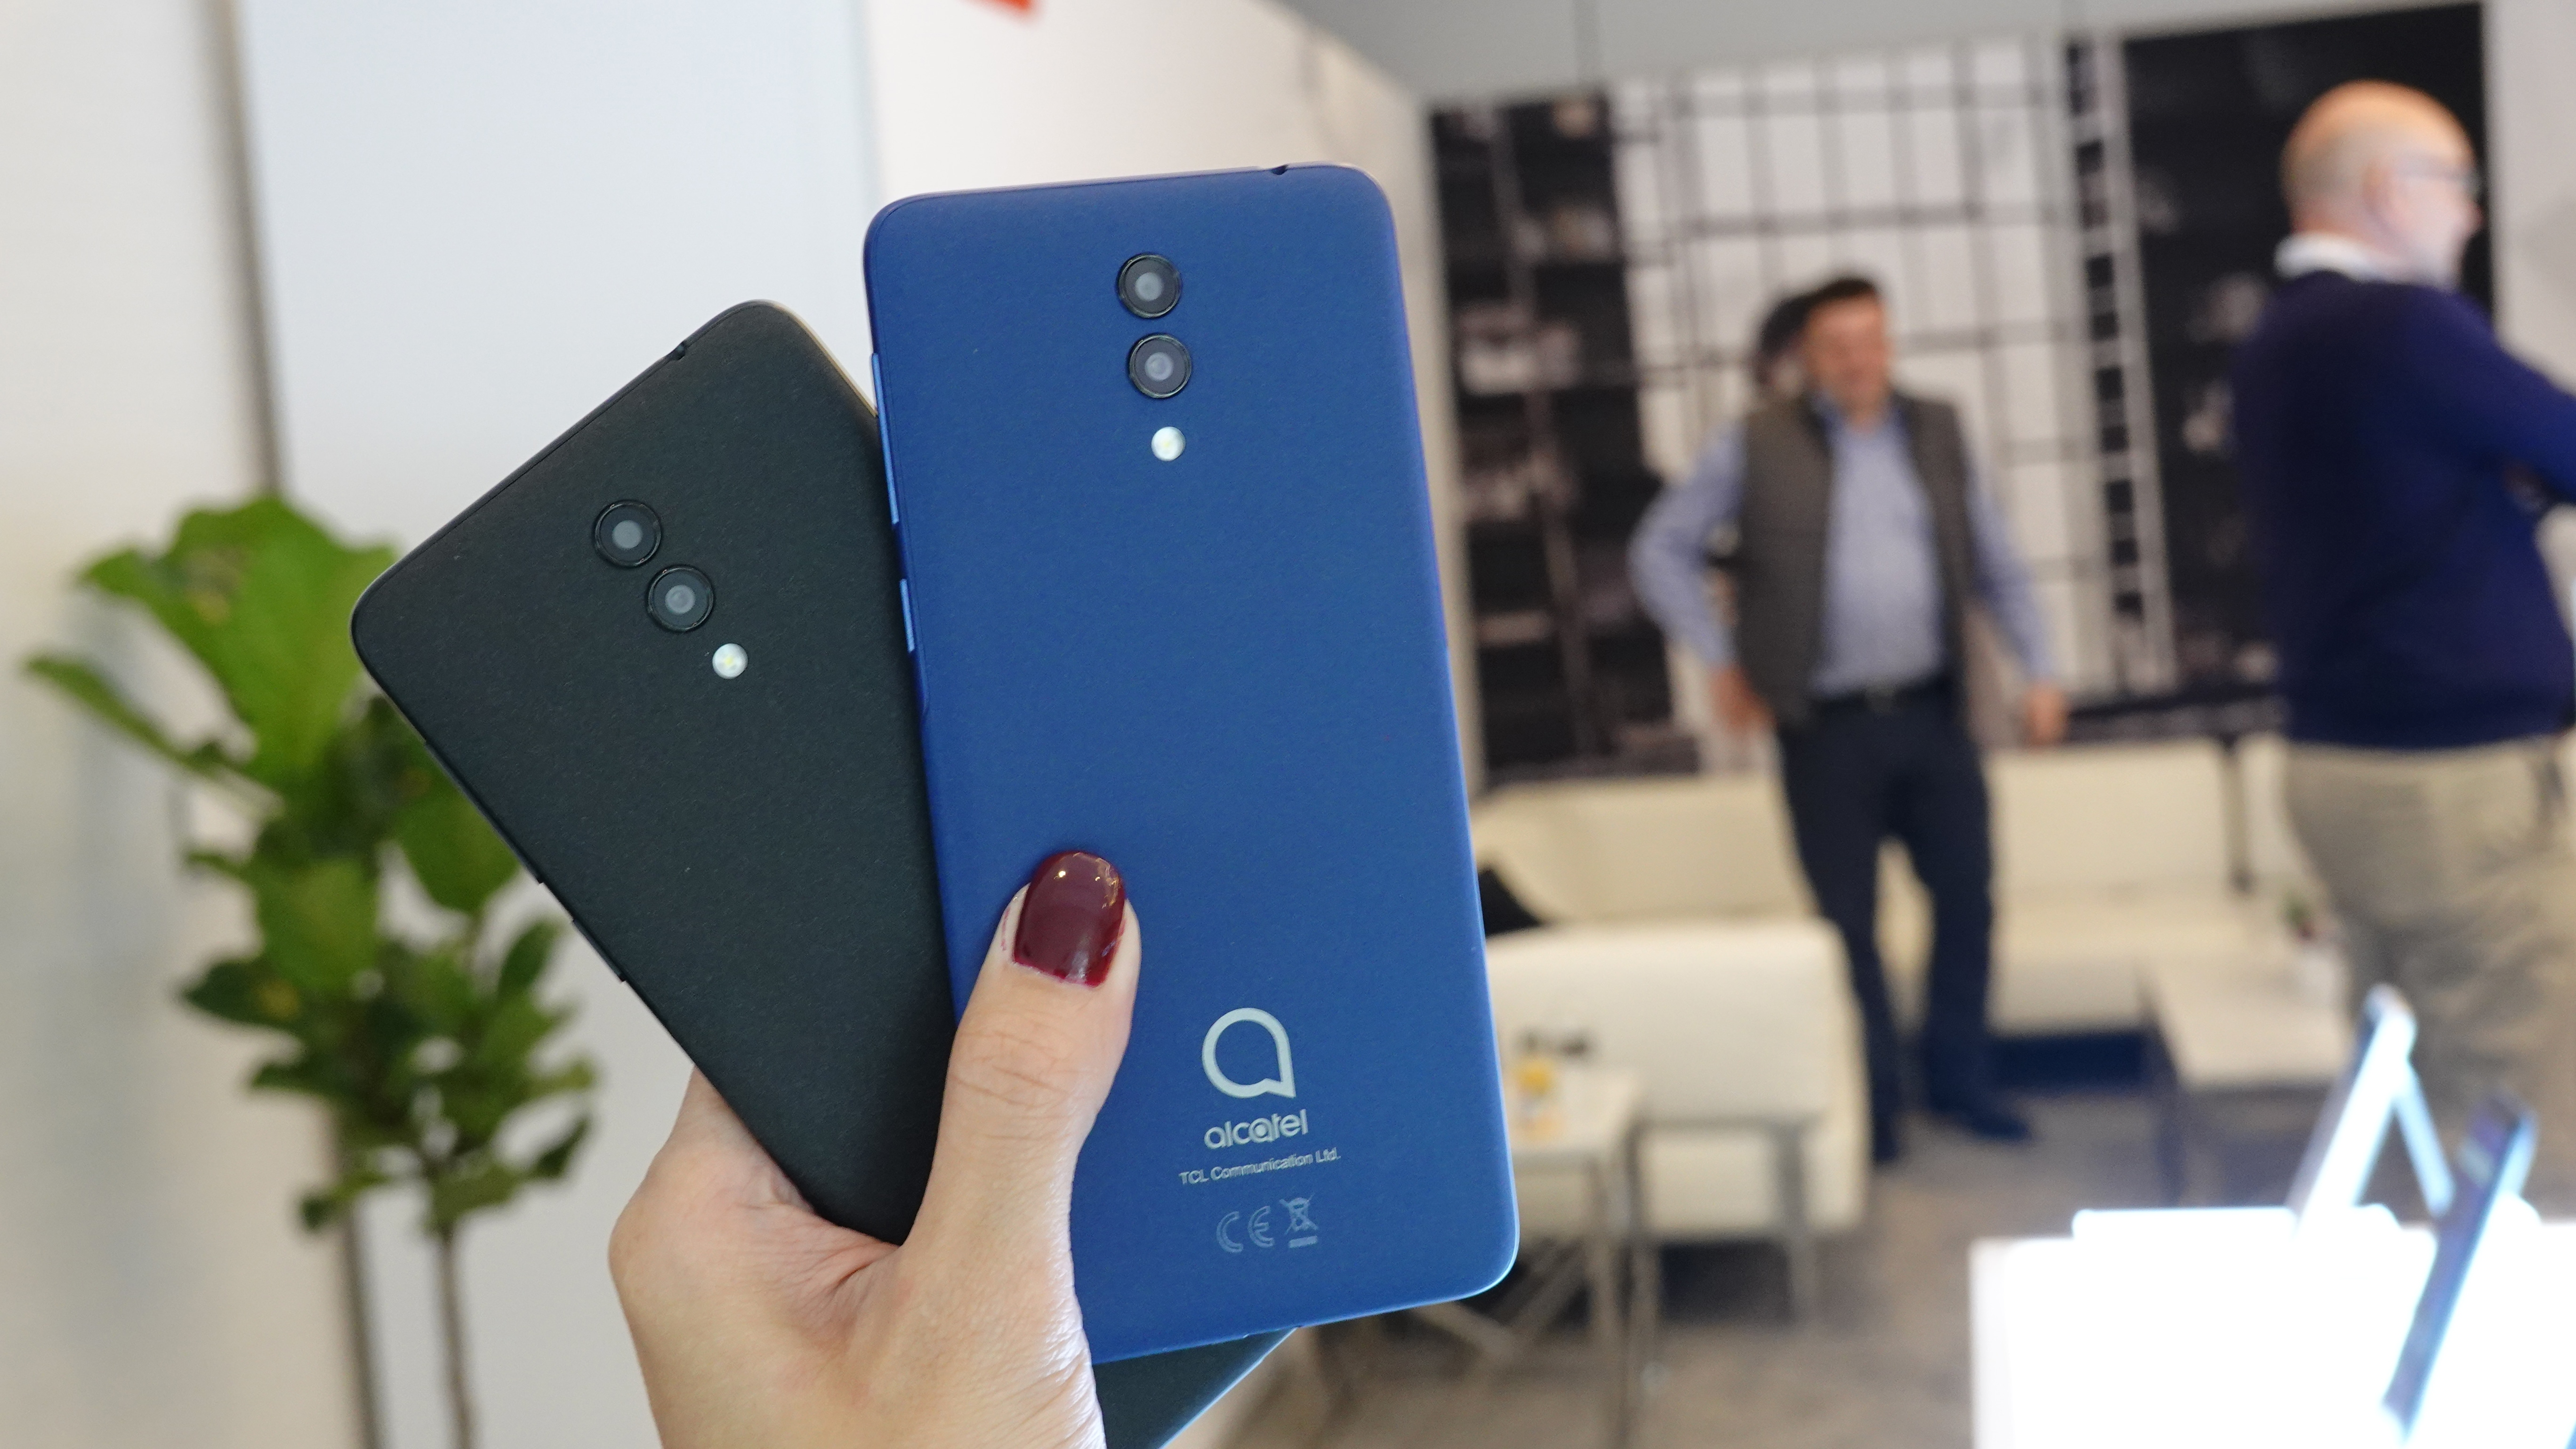 Alcatel launches affordable smartphones at CES 2019